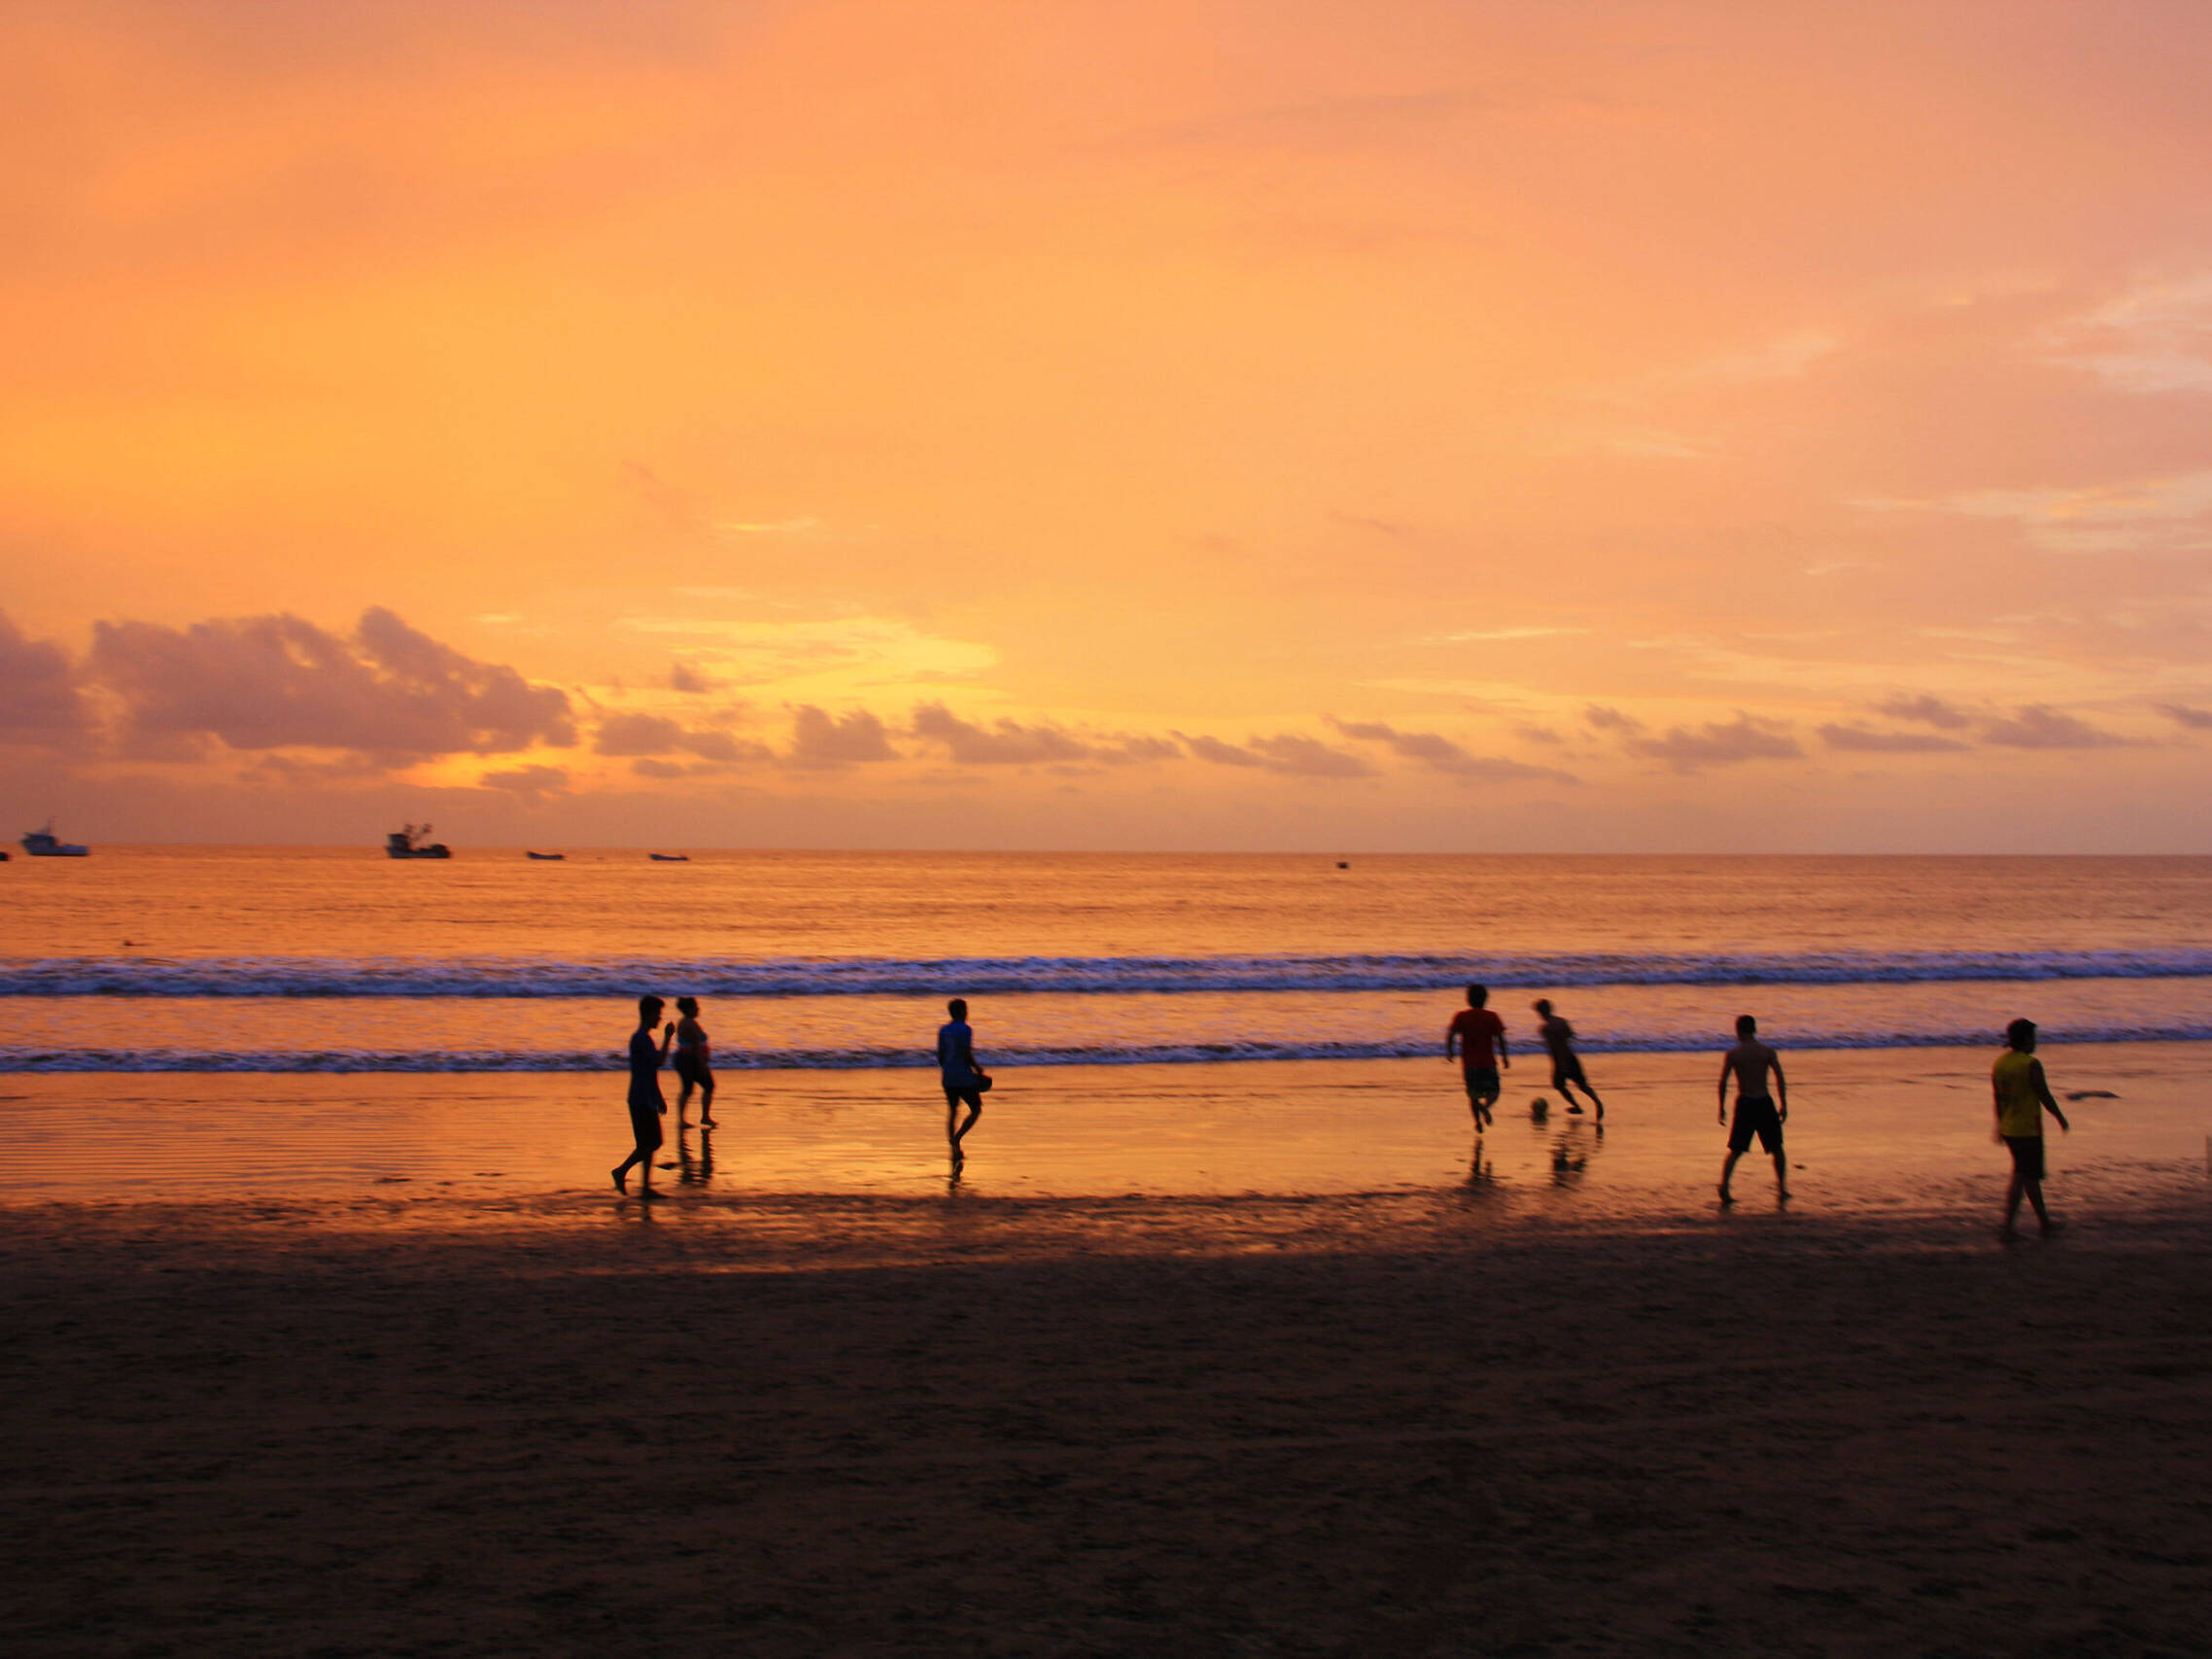 sunset soccer game on the beach in Ecuador